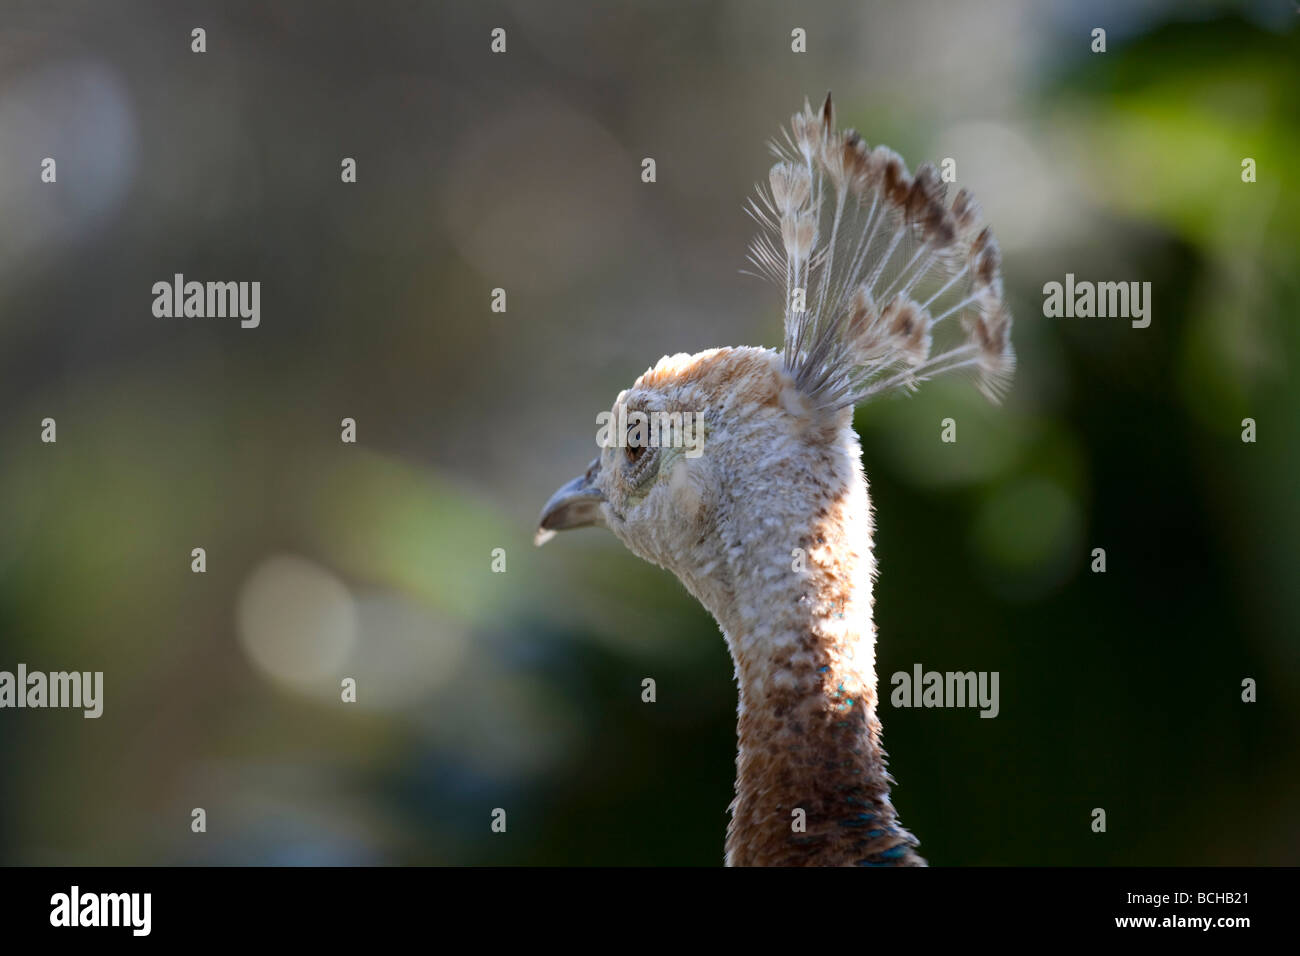 Rear head shot of Indian Blue peahen. Genus Pavo, pheasant family, Phasianidae, species Indian Peafowl. - Stock Image